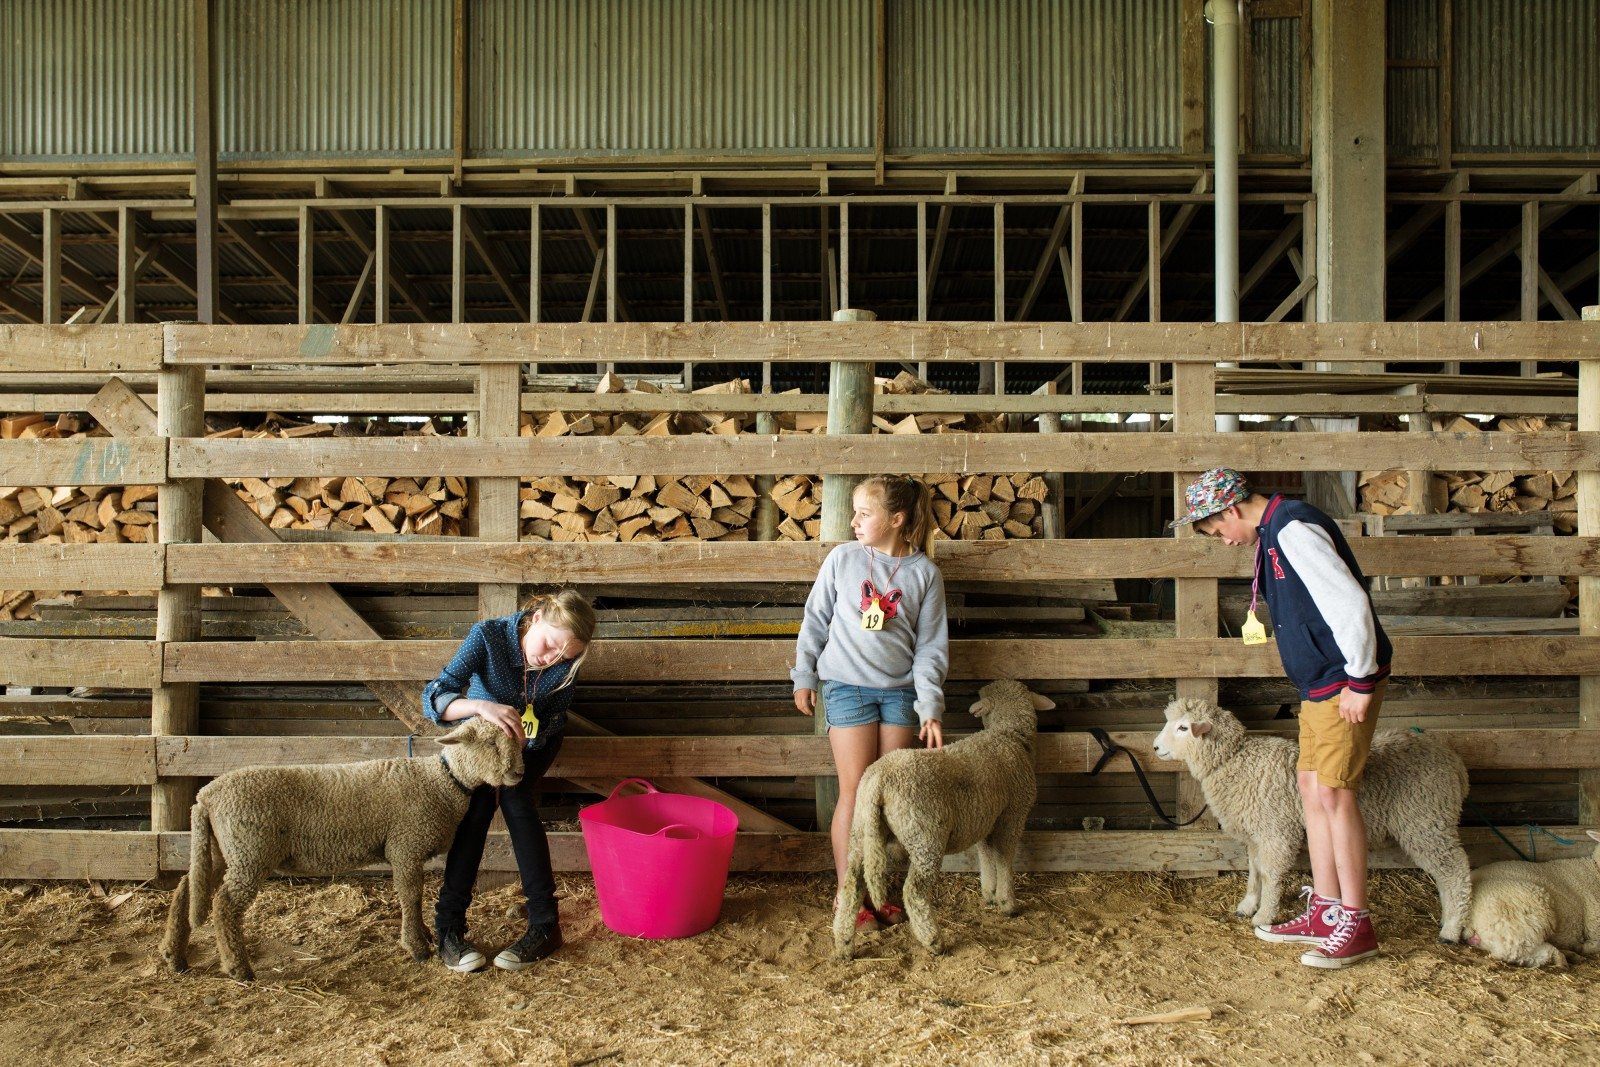 Margot and Annie Ferguson and Ben Oakly wait for their age group to be called to the Clareville Showgrounds ring to compete at the South Wairarapa Group Lamb and Calf Day, near Carterton. Many children attend multiple shows with their animals during the season—their own pet day at Kahutara School as well as South Featherston School, the South Wairarapa Group Lamb and Calf Day, and the A&P Show. Shows represent long periods of waiting for the children, and moments of high drama—the sharp pain of being stomped on by a calf, shiny trophies awarded and escapee lambs tackled.